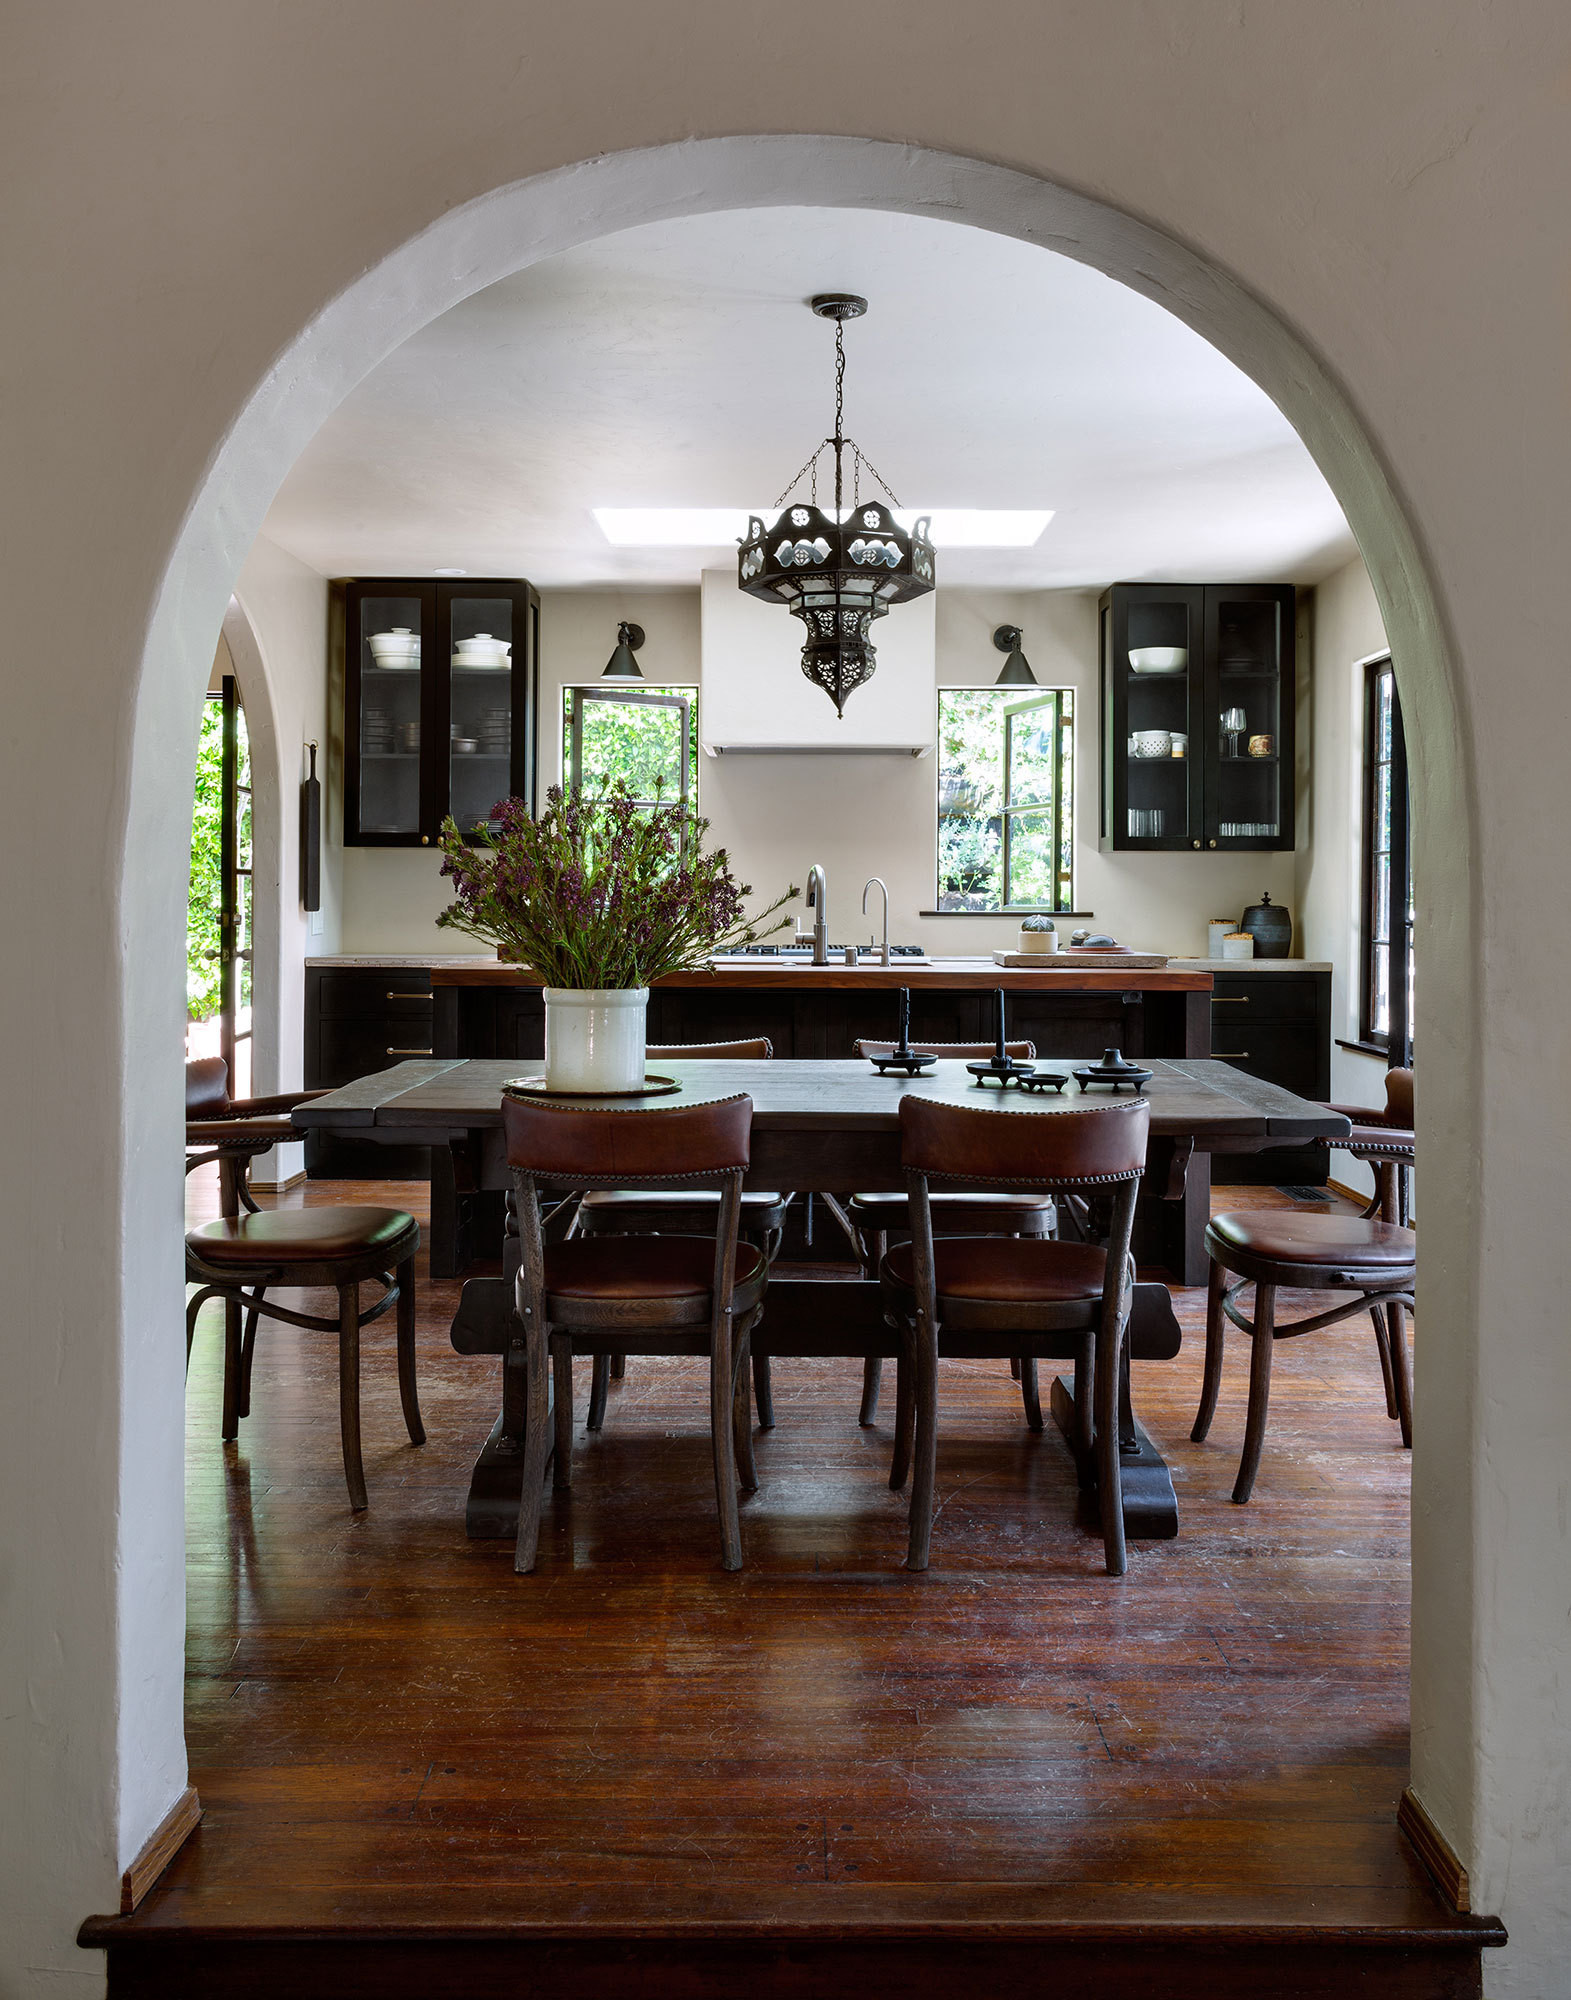 A traditional arched doorway leads to the dining area and kitchen.